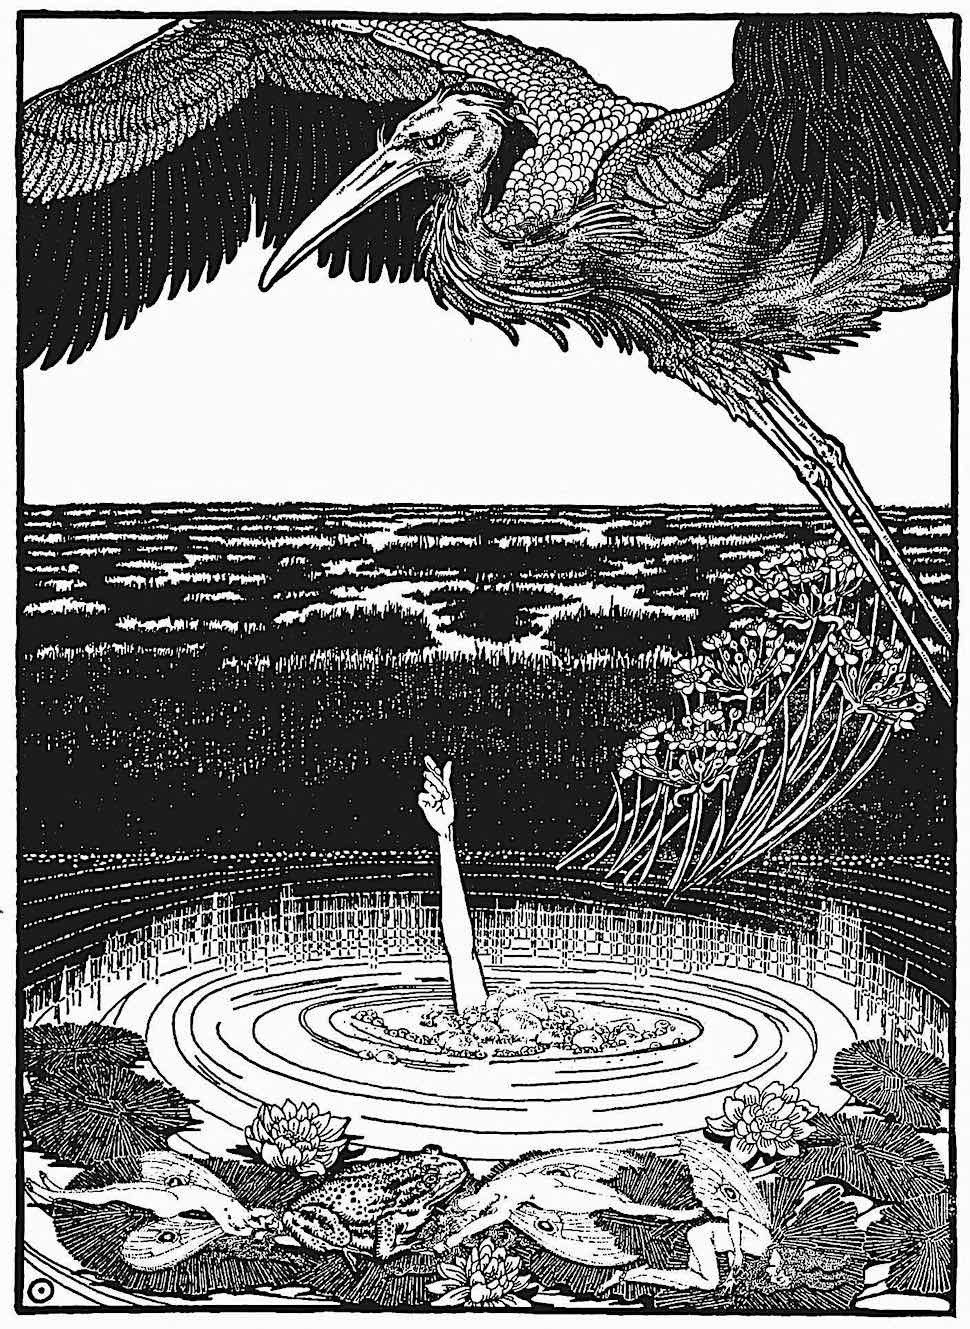 a Dugald Stewart Walker 1914 illustration of someone drowning in a marsh wetland